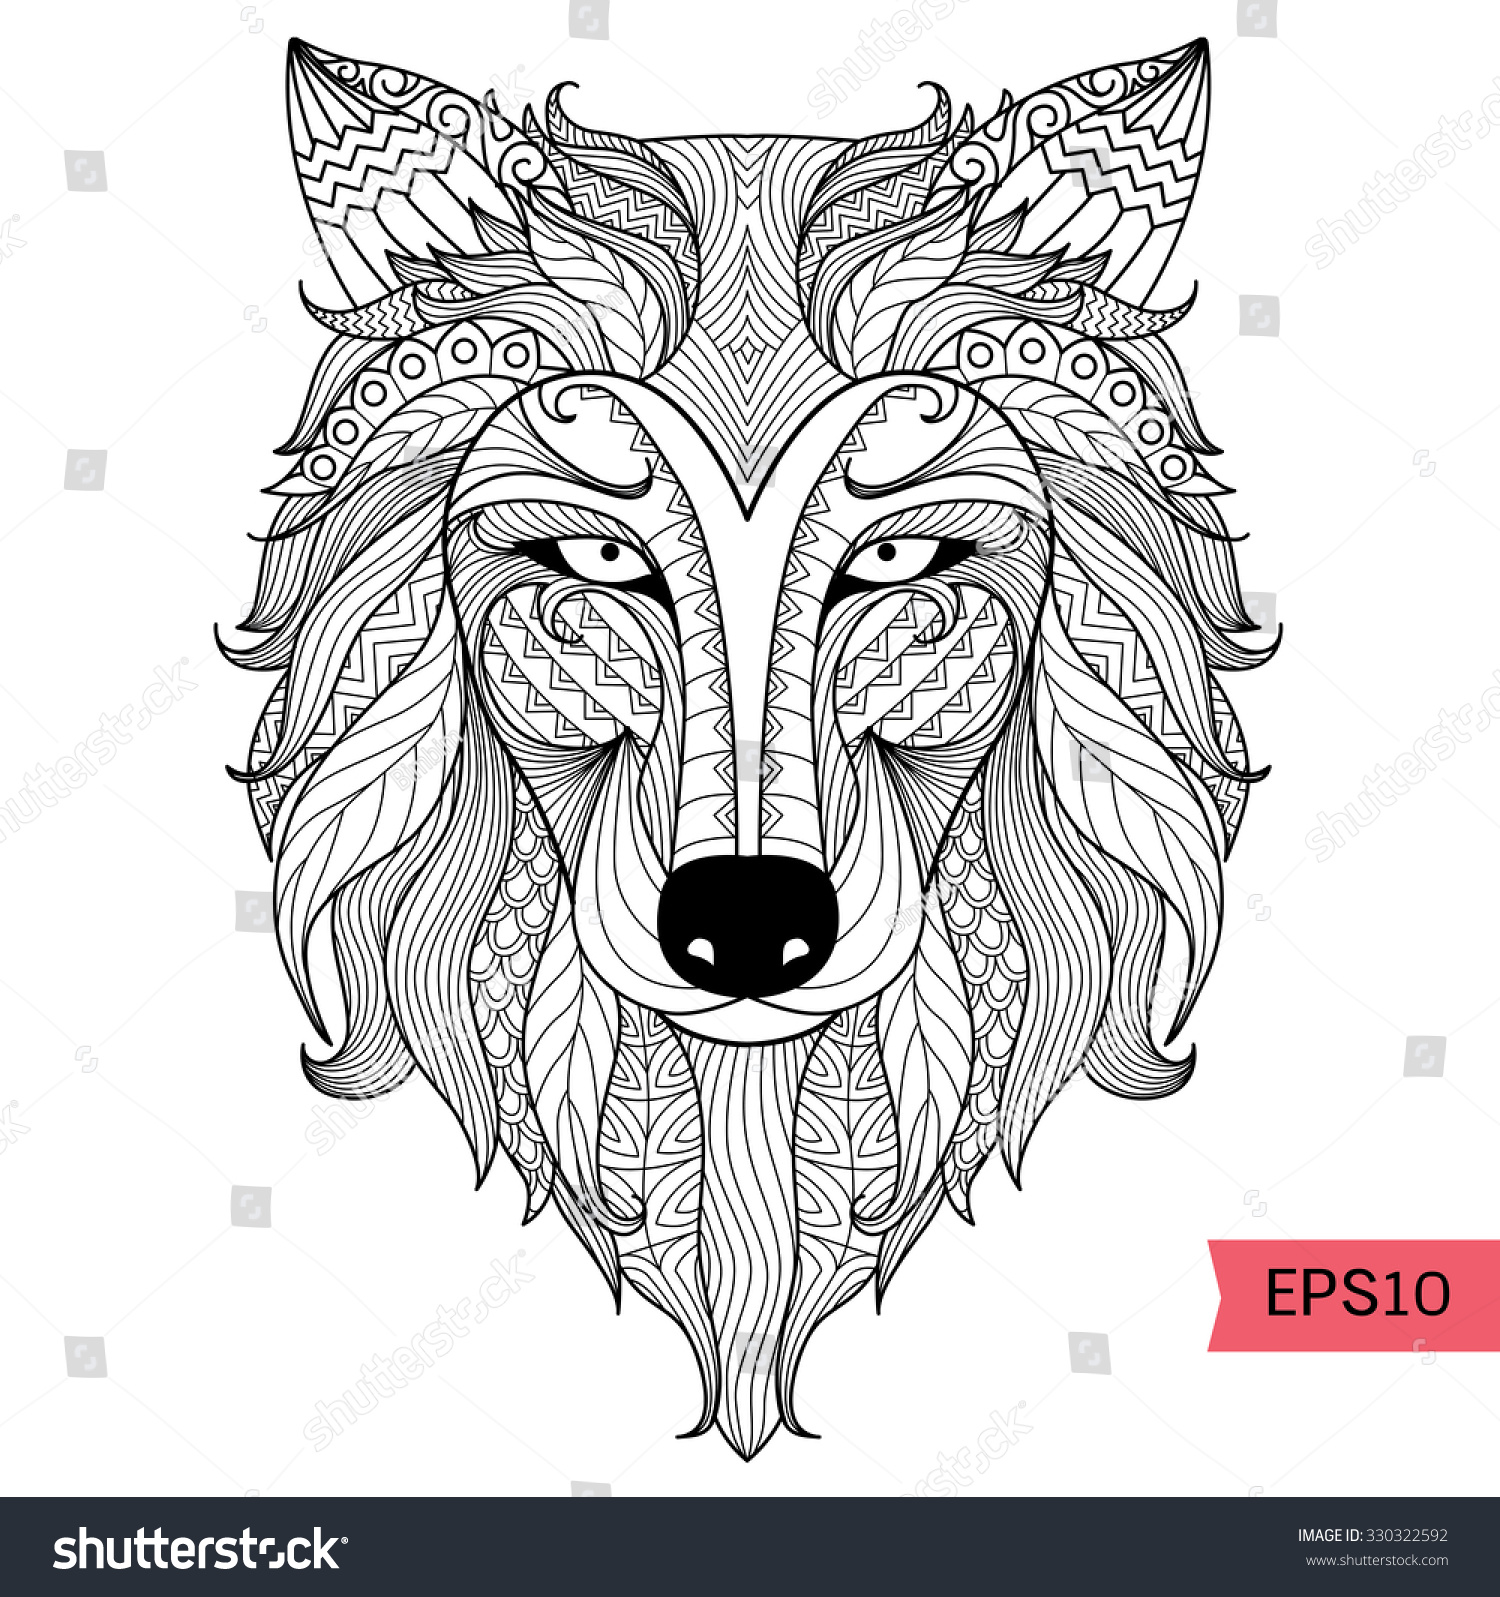 Detail Zentangle Wolf Coloring Pagetattoo T Stock Vector (Royalty ...